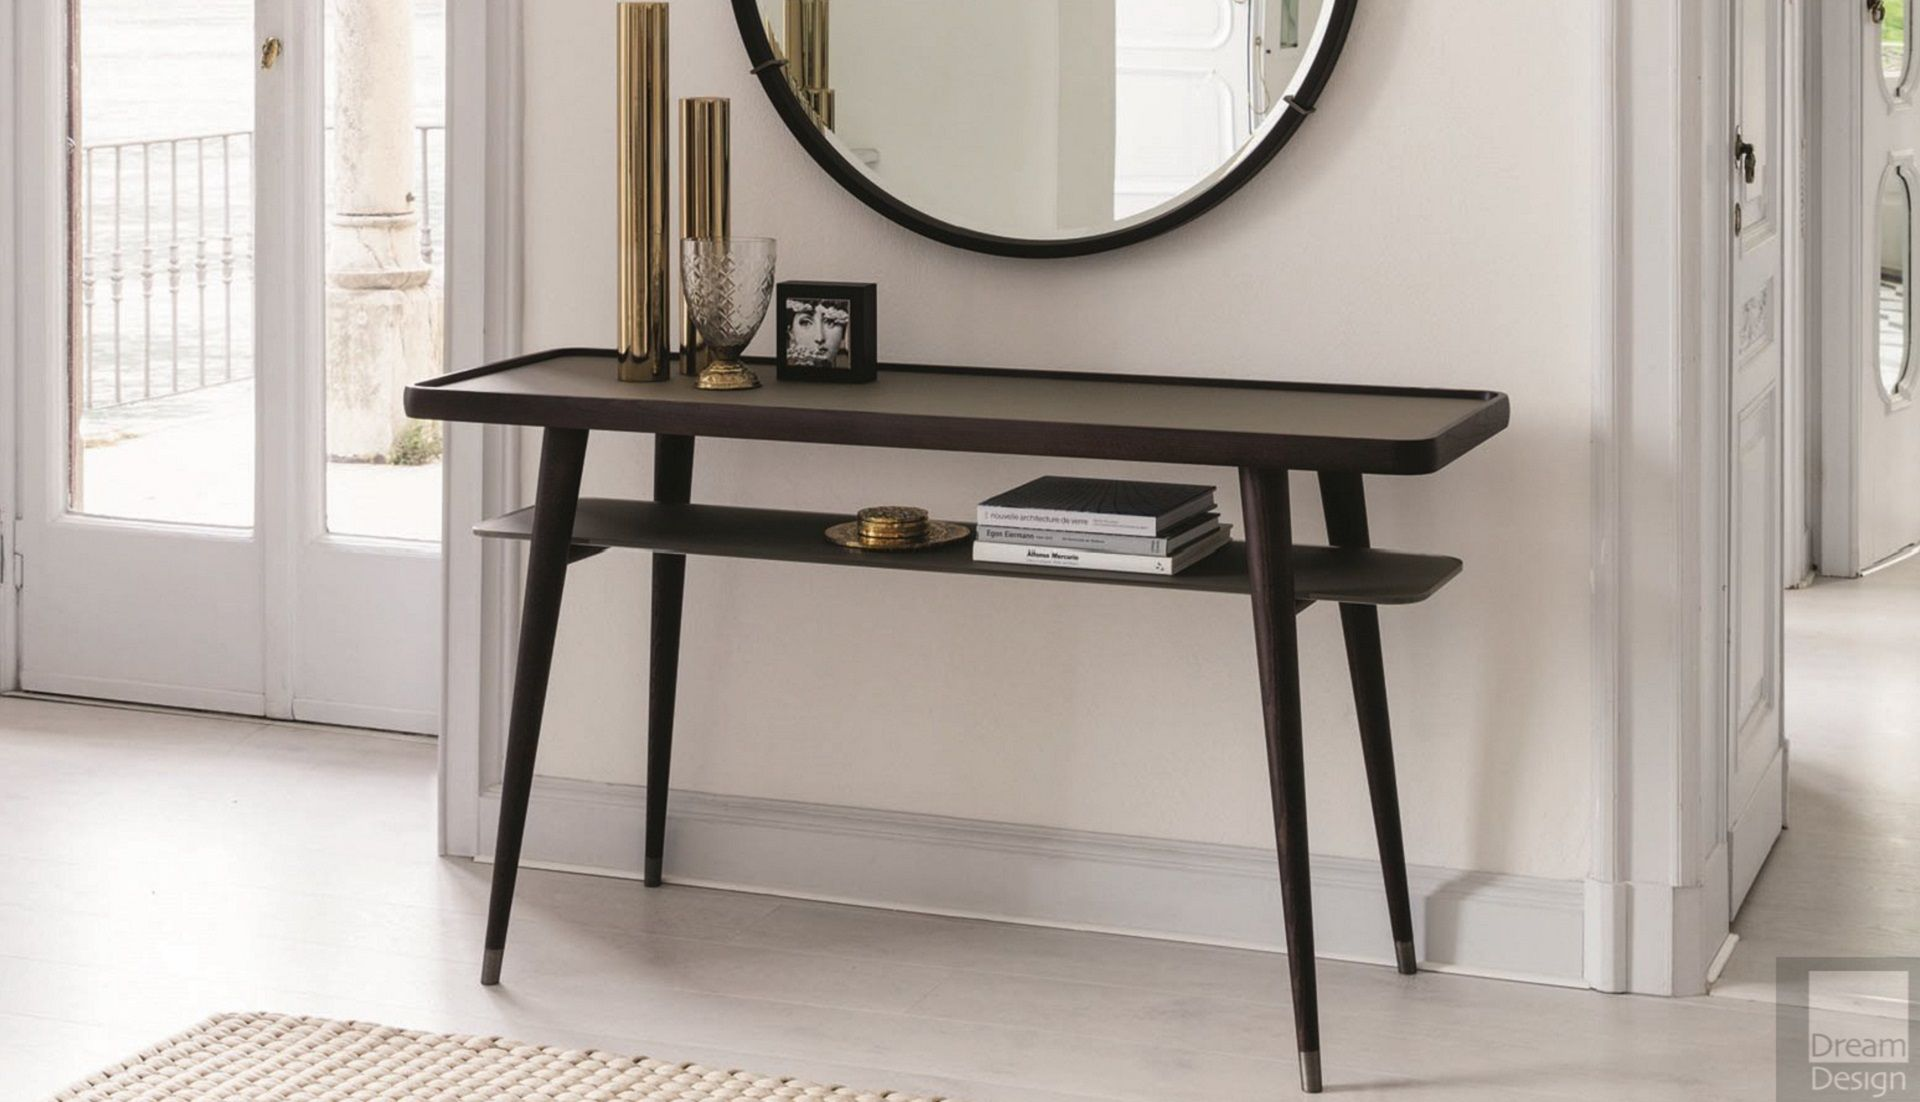 Italienische Möbel Chantal Porada Chantal Console Table Kamila Sofa Furniture